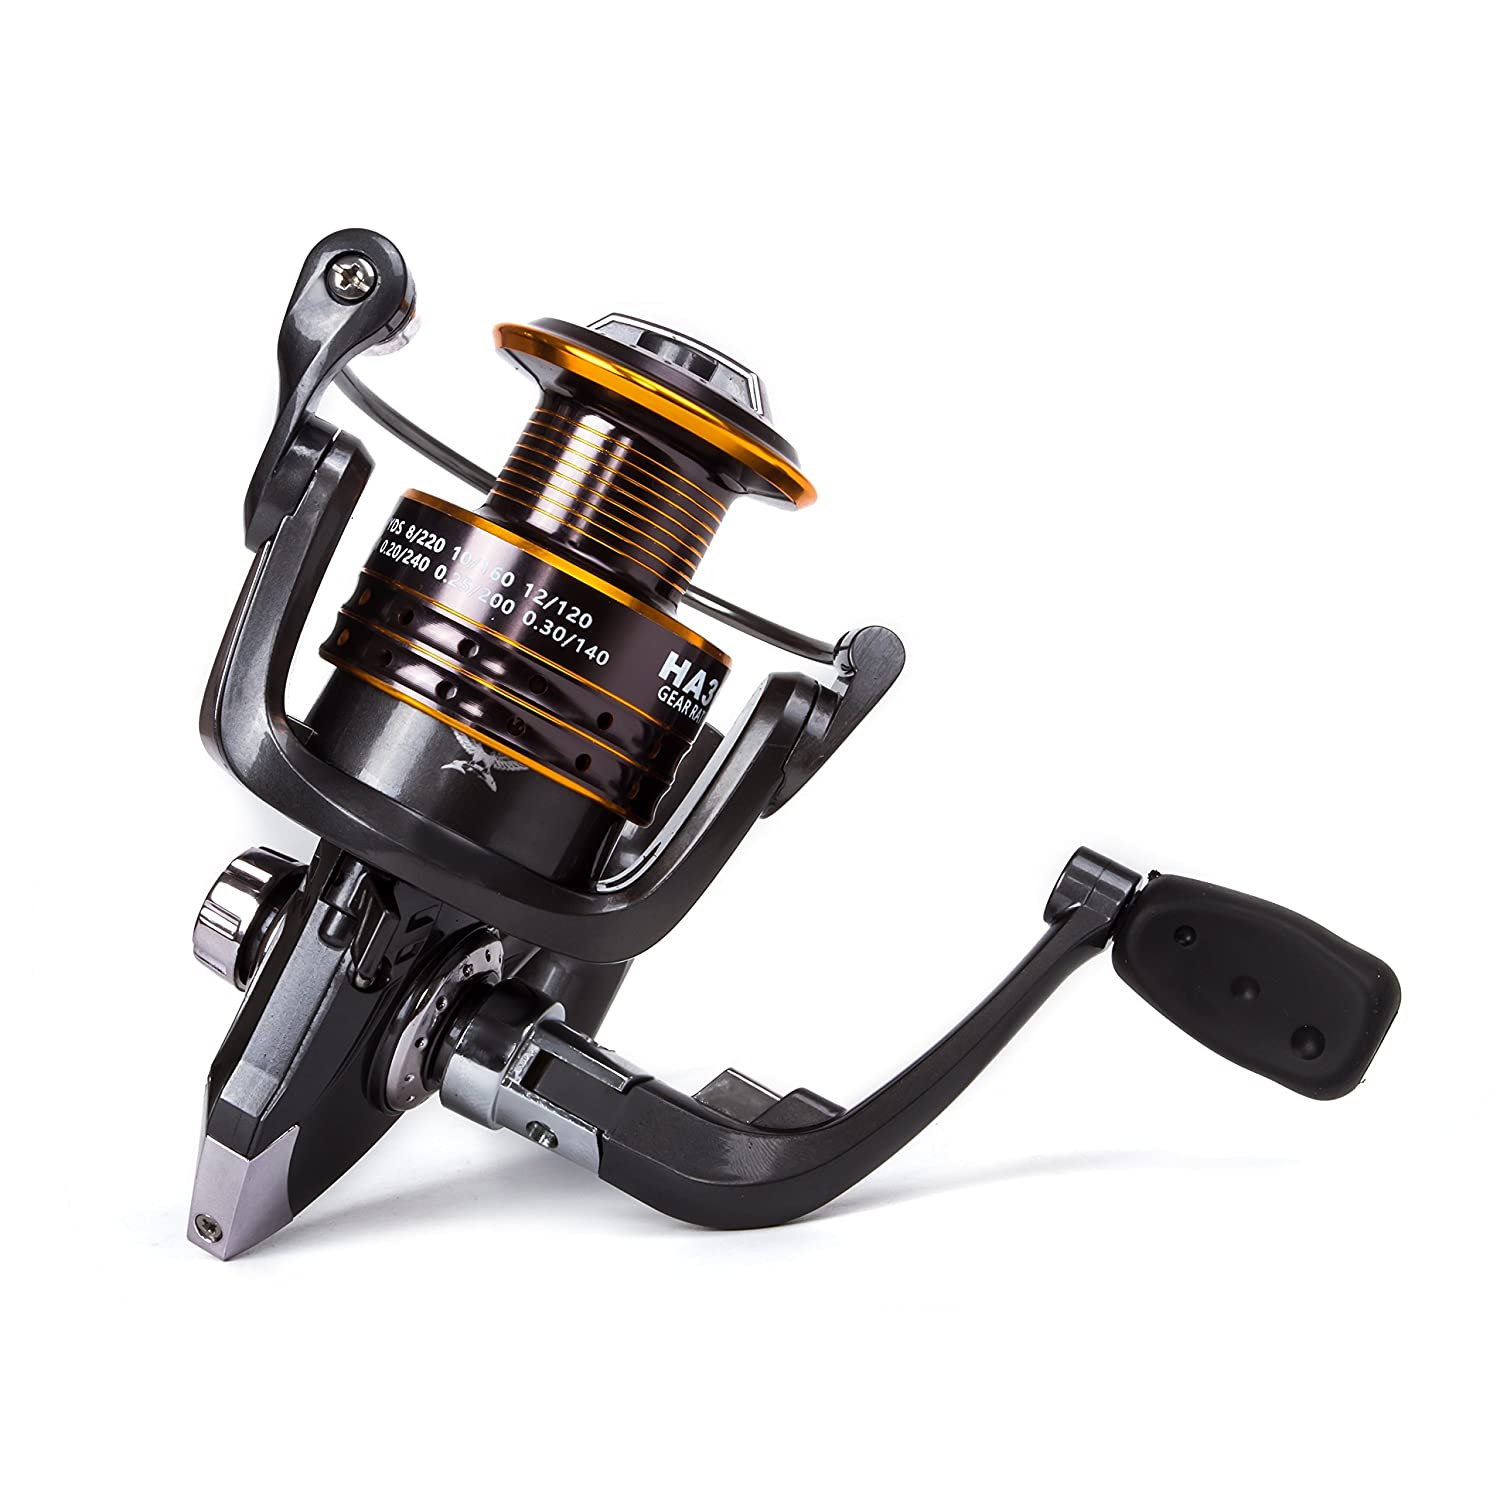 Sunvp fishing reels spinning freshwater saltwater with 5 2 for Freshwater fishing gear